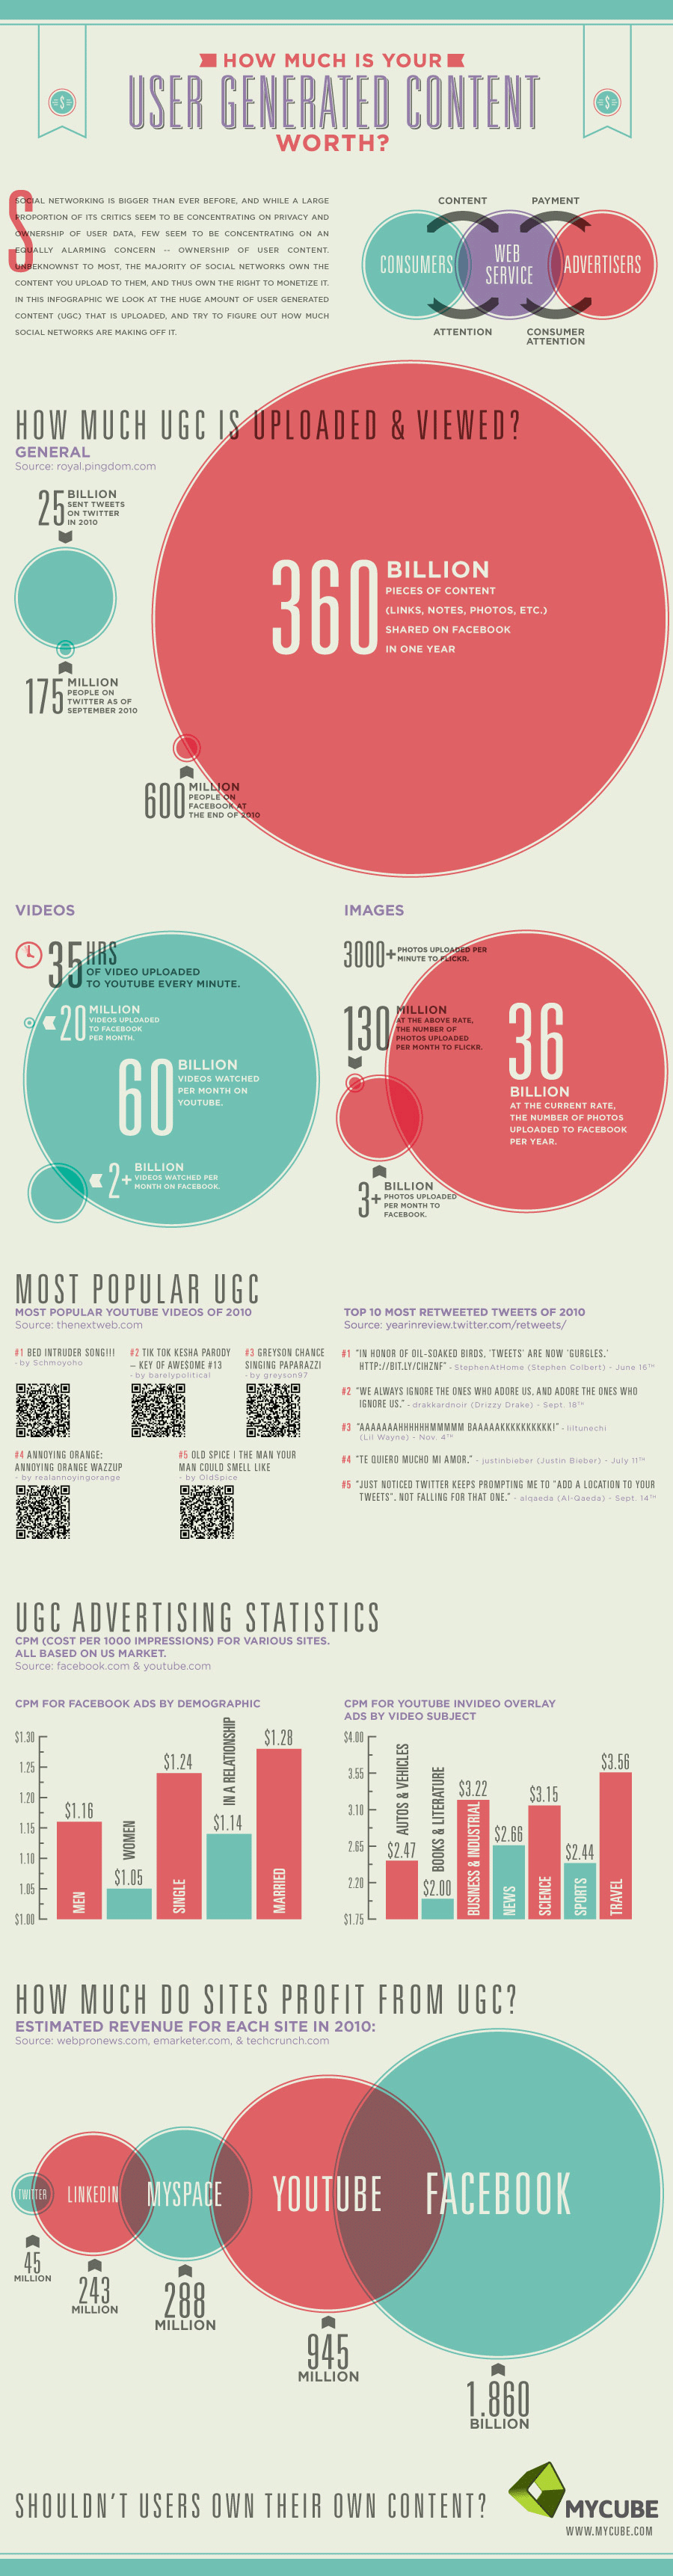 ugc2 How Much Is Your User Generated Content (UGC) Worth? [INFOGRAPHIC]